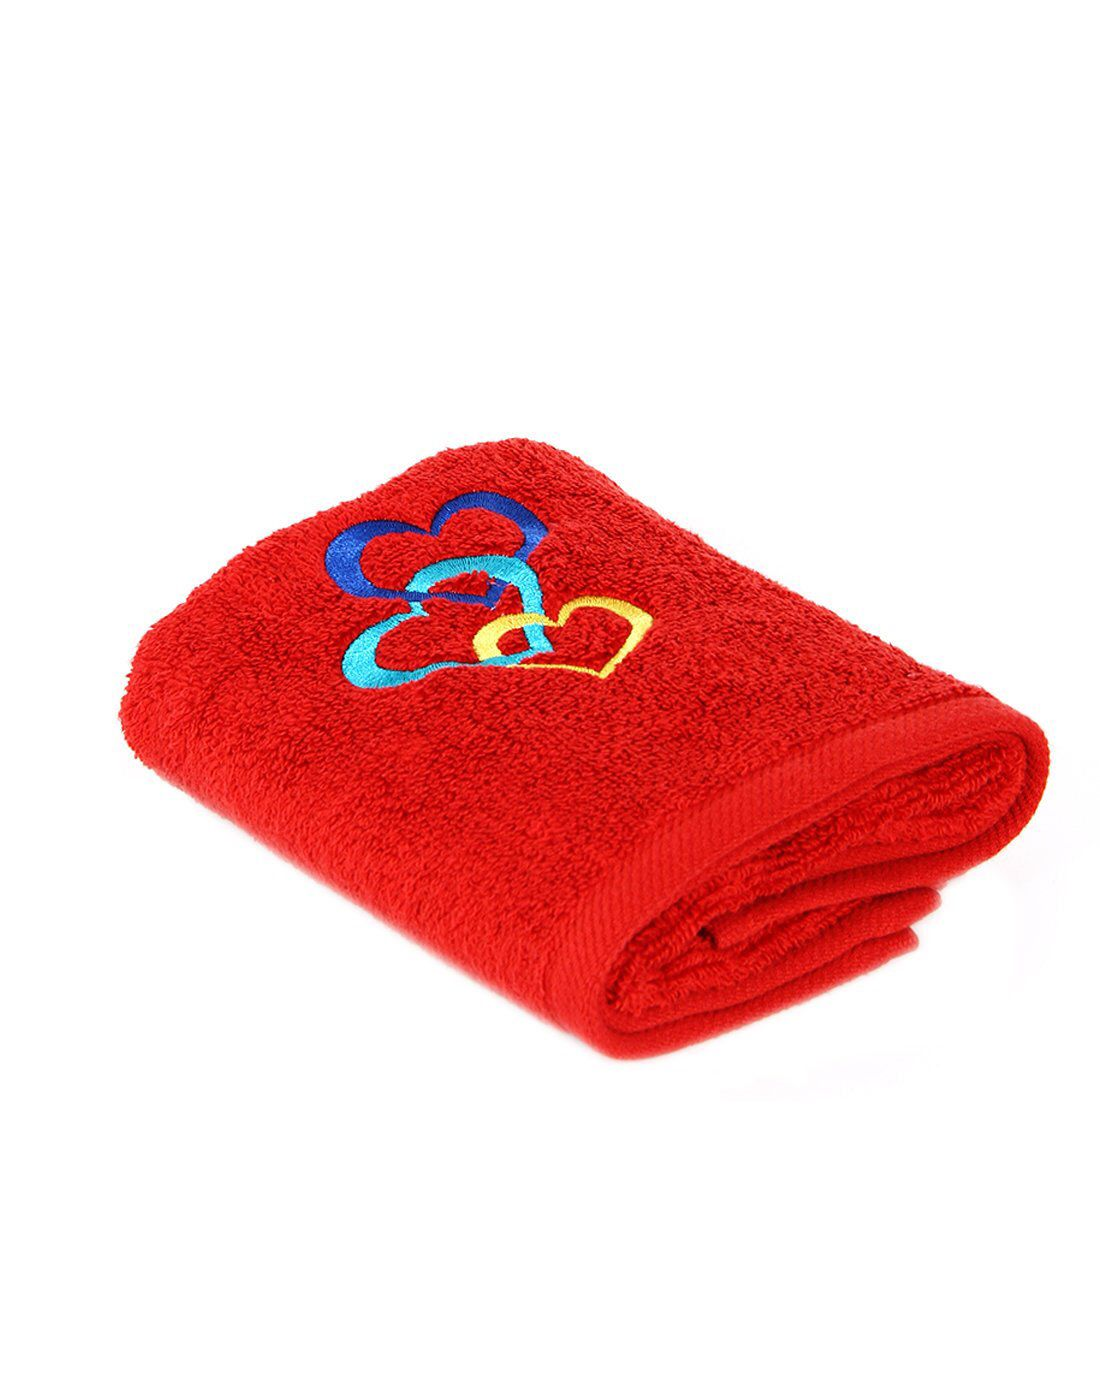 My etsy shop premium hand towel for gift embroidered